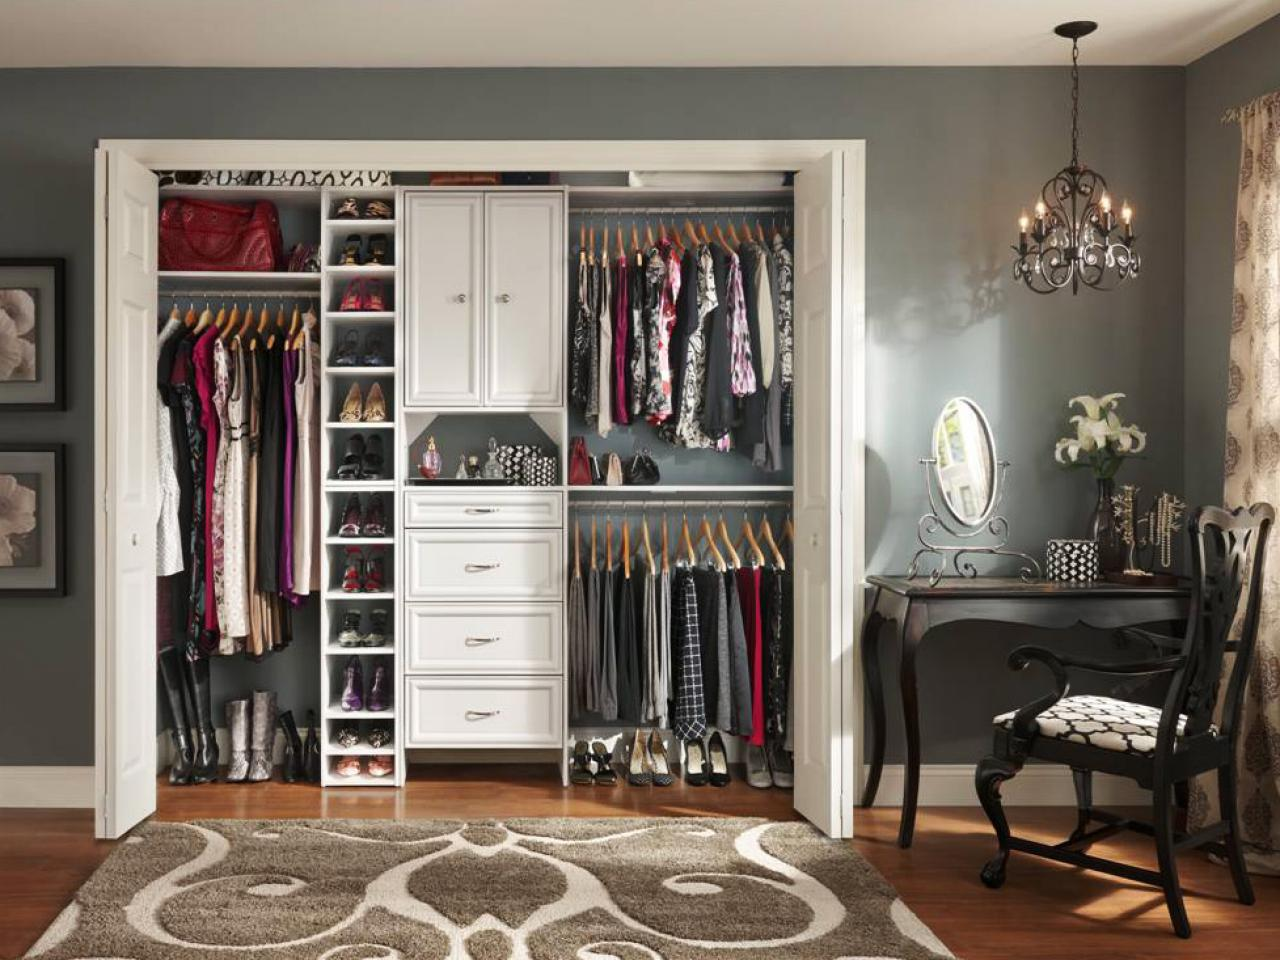 How to Make Your Own Closet Organizer | Diy Walk in Closet | Modular Closet Systems